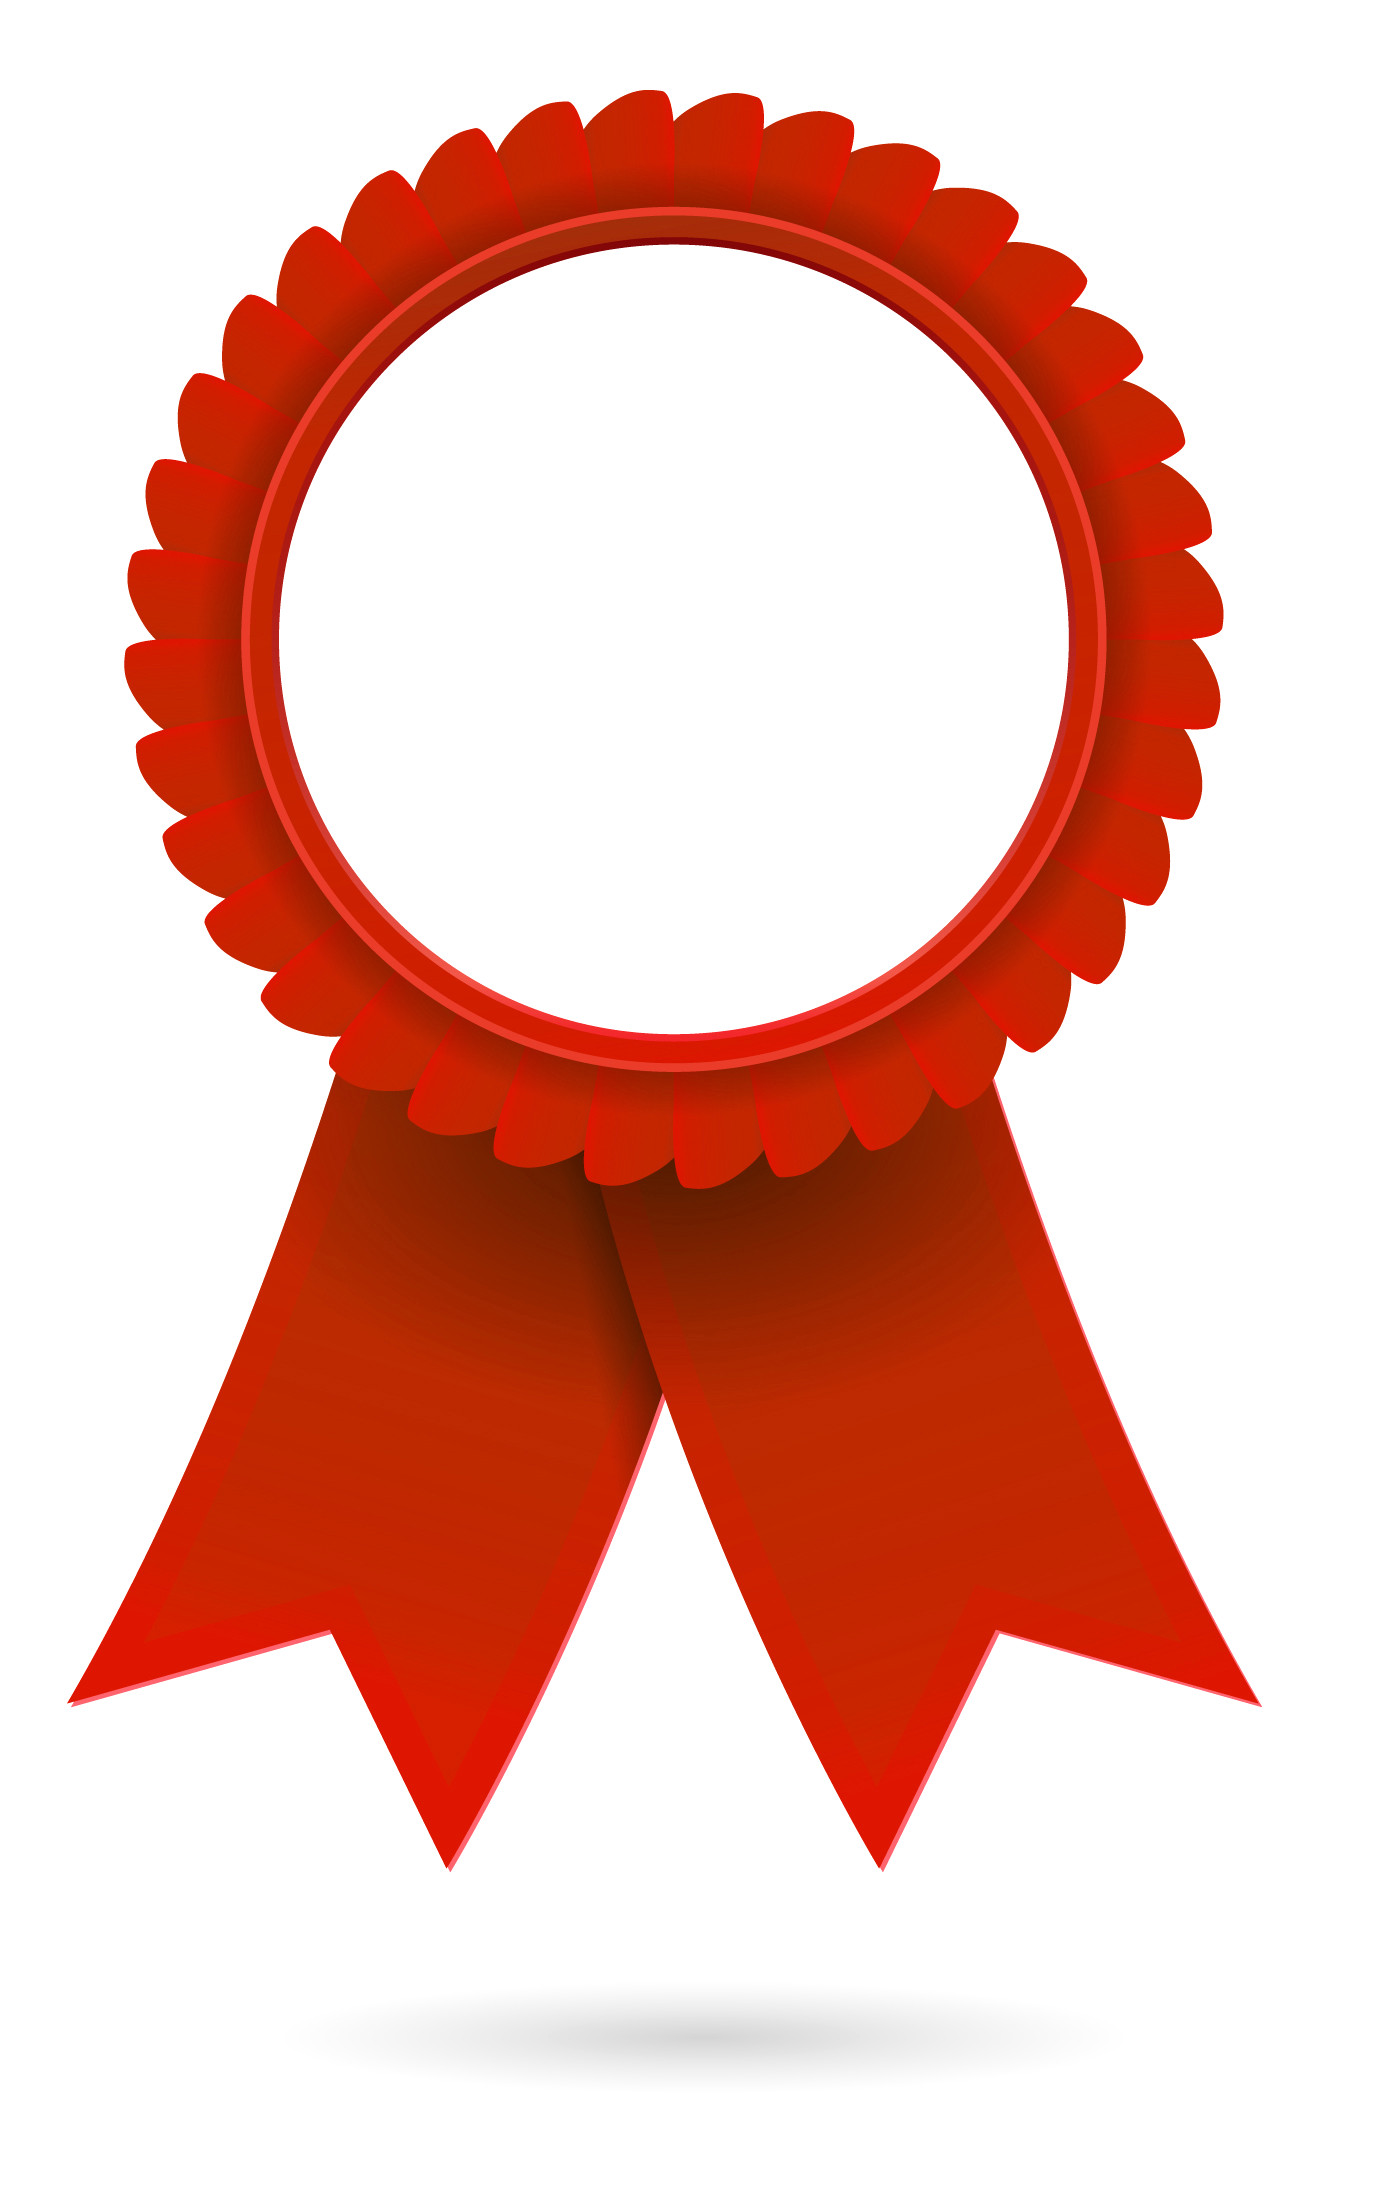 Award Ribbon Clipart Png Clipart Station Avec Ampel Clipart Schwarz Weiß Et  Award Ribbon Clipart Png 76 PlusPng.com  - Ampel PNG Schwarz Weiss